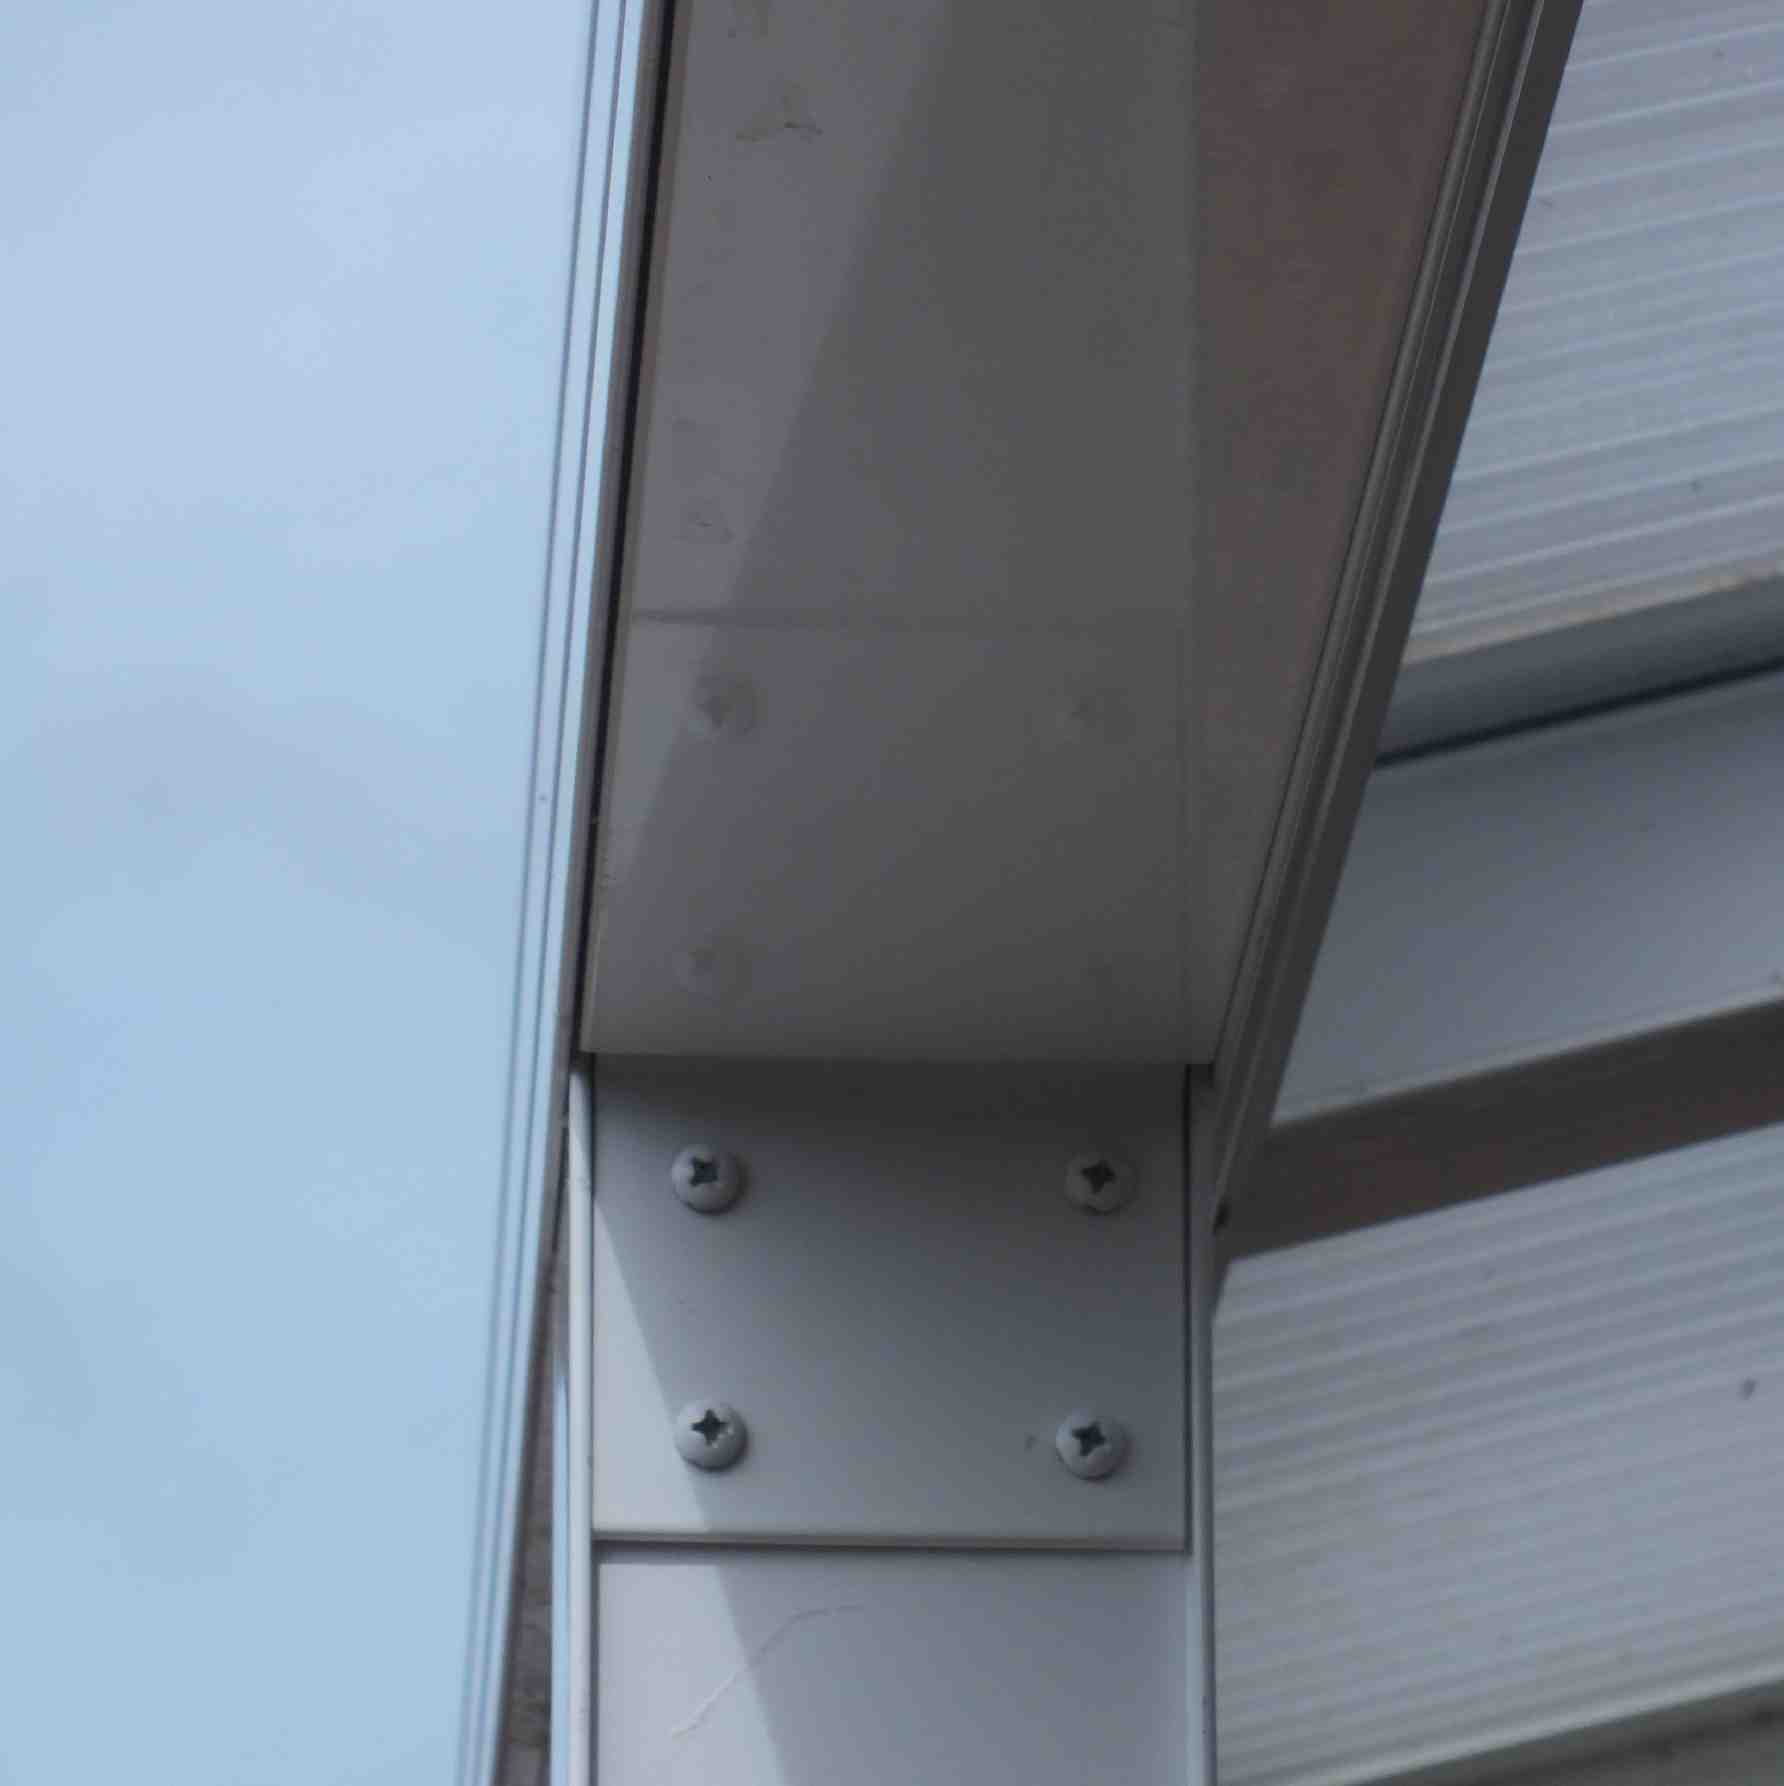 Affordable Omega Verandah with 6mm Glass Clear Plate Polycarbonate Glazing - 6.3m (W) x 3.0m (P), (4) Supporting Posts